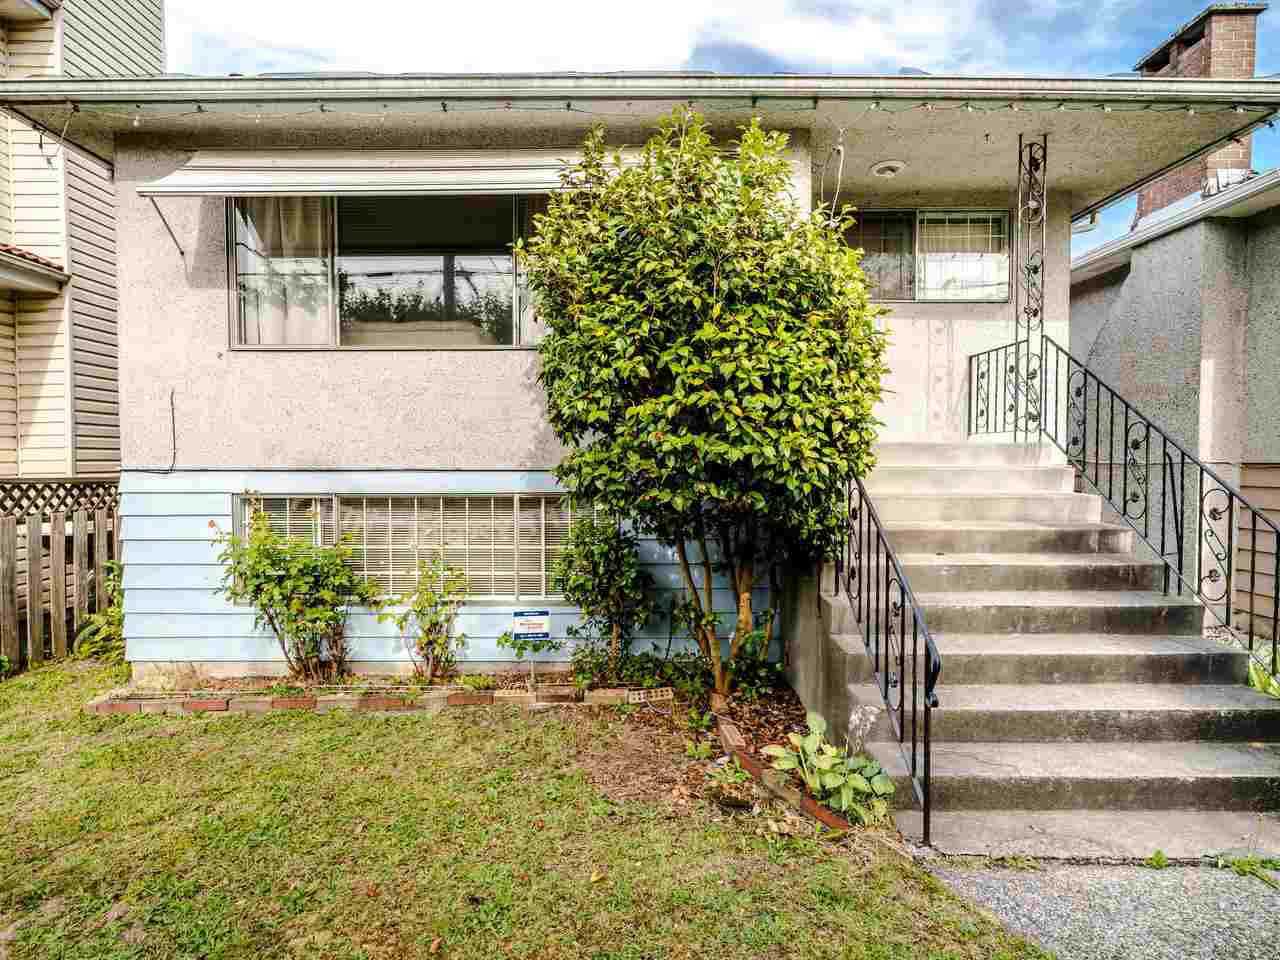 Main Photo: 5904 BERKELEY Street in Vancouver: Killarney VE House for sale (Vancouver East)  : MLS®# R2481103